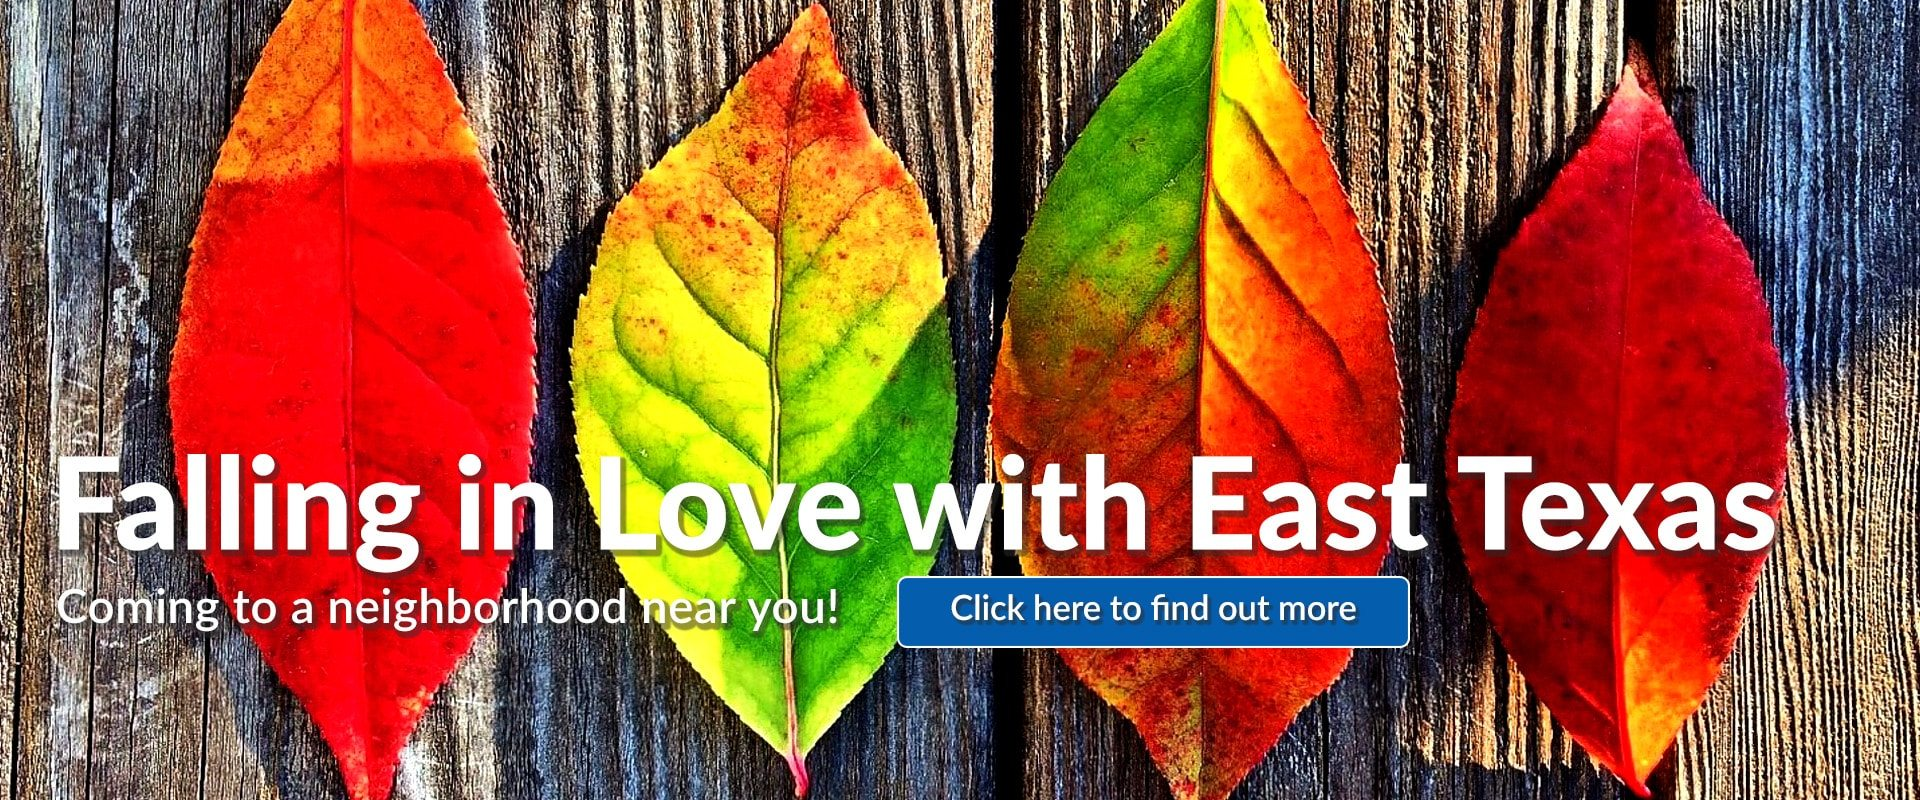 91.3 KGLY East Texas Christian Radio Falling in Love with East Texas Fall Festivals Near You